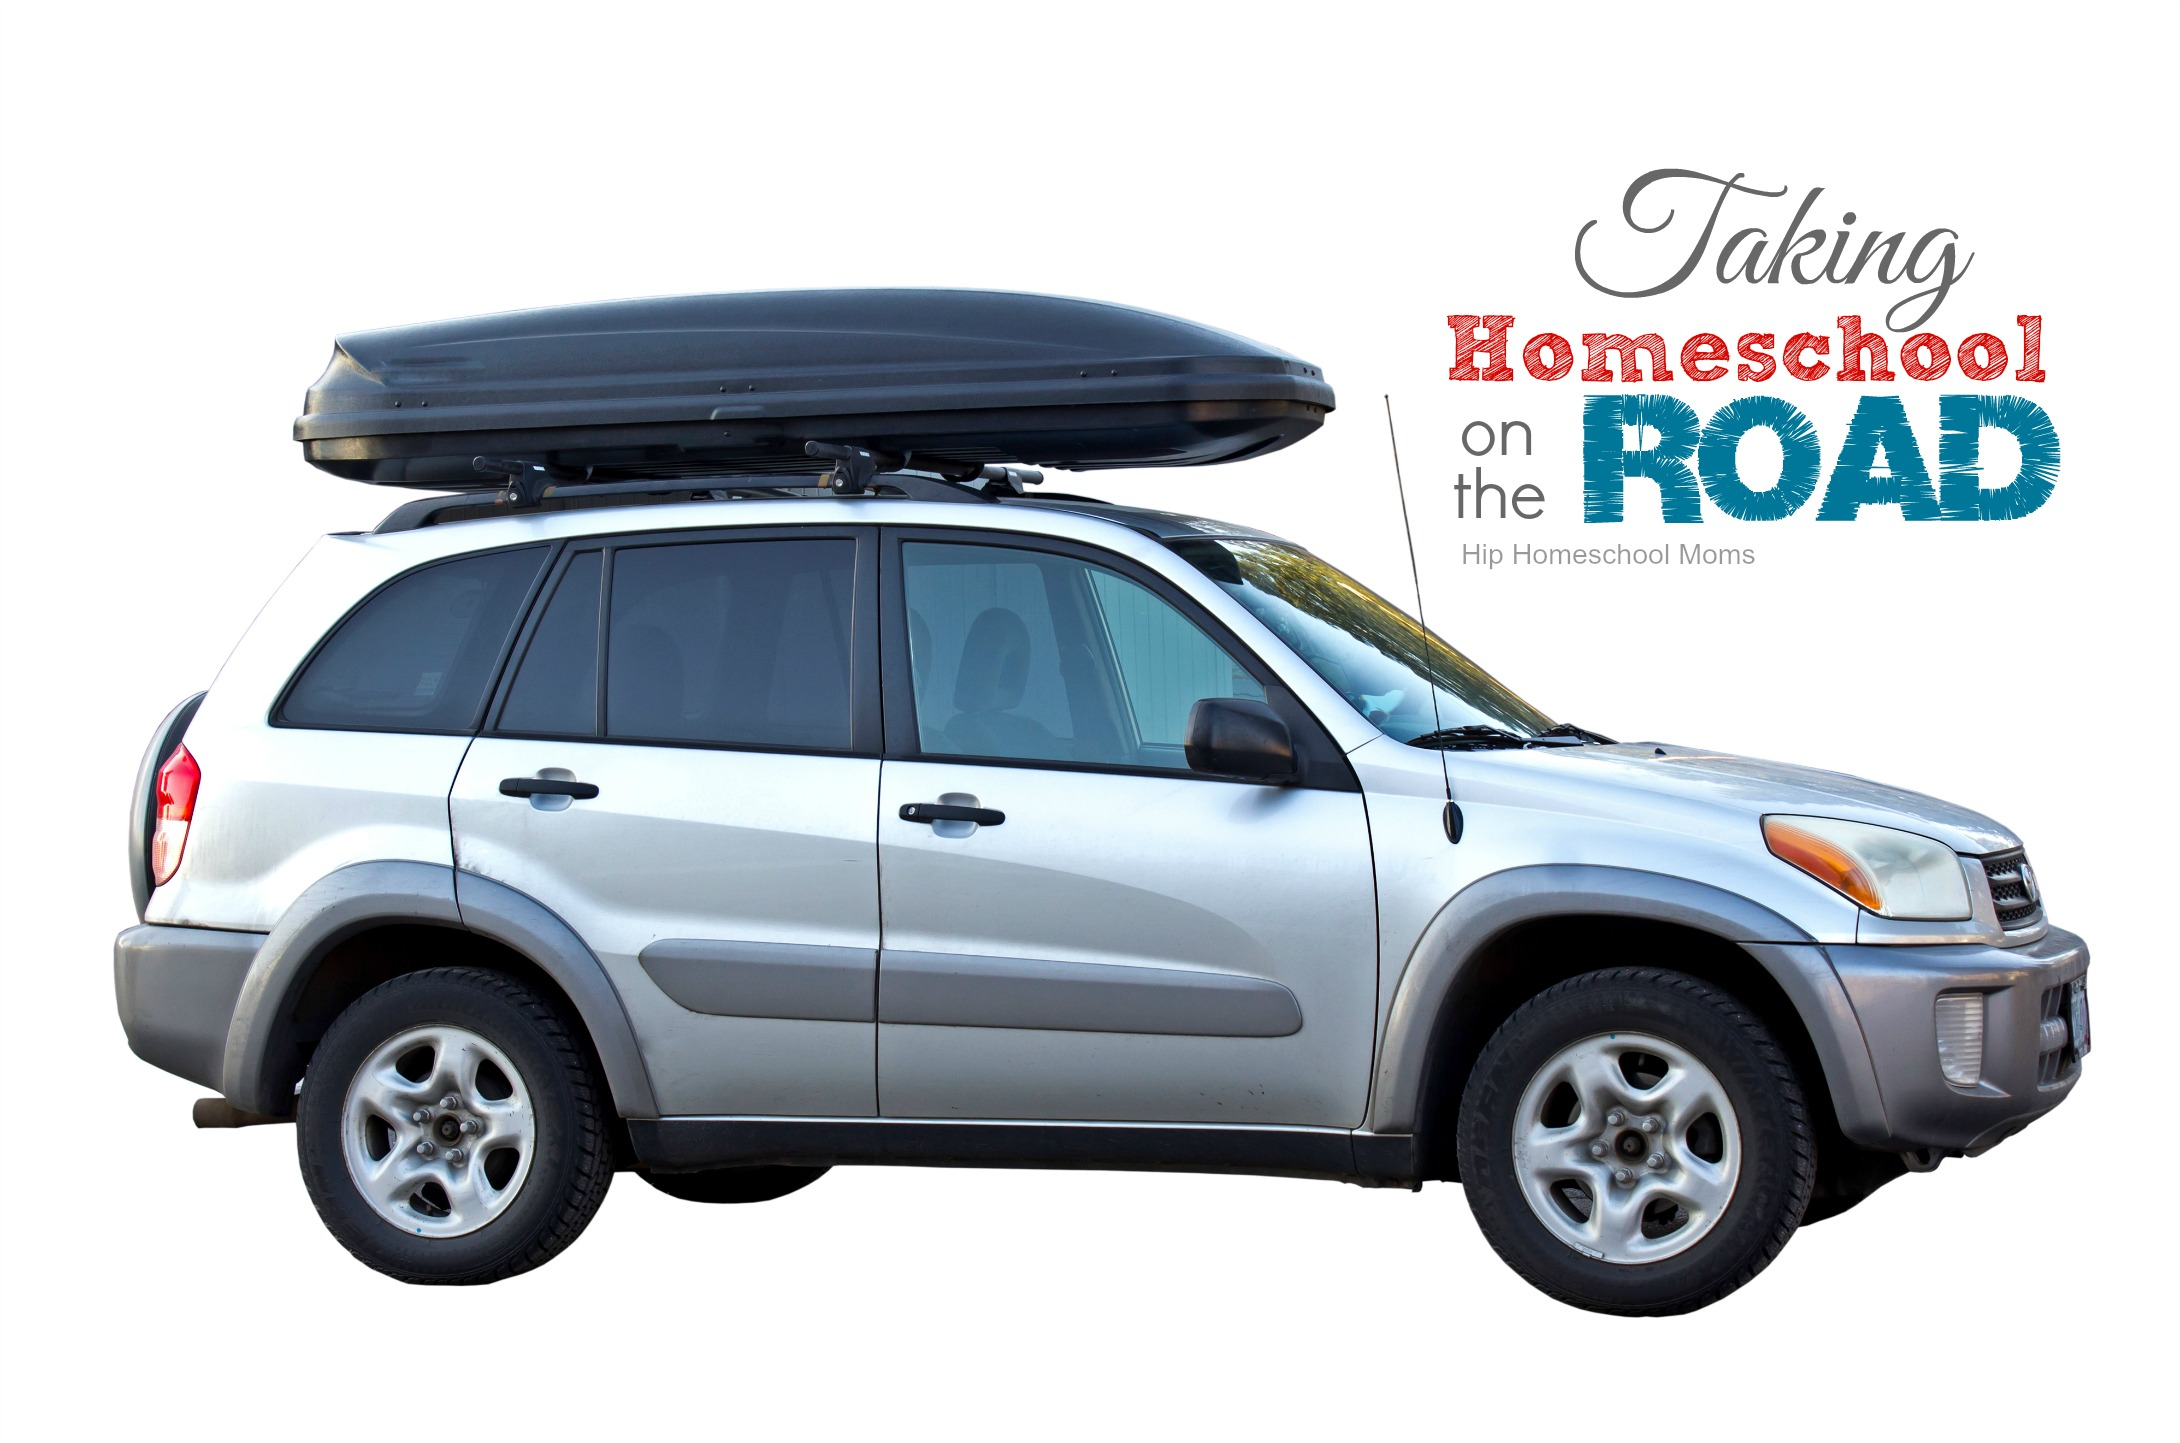 Taking Your Homeschool on the Road